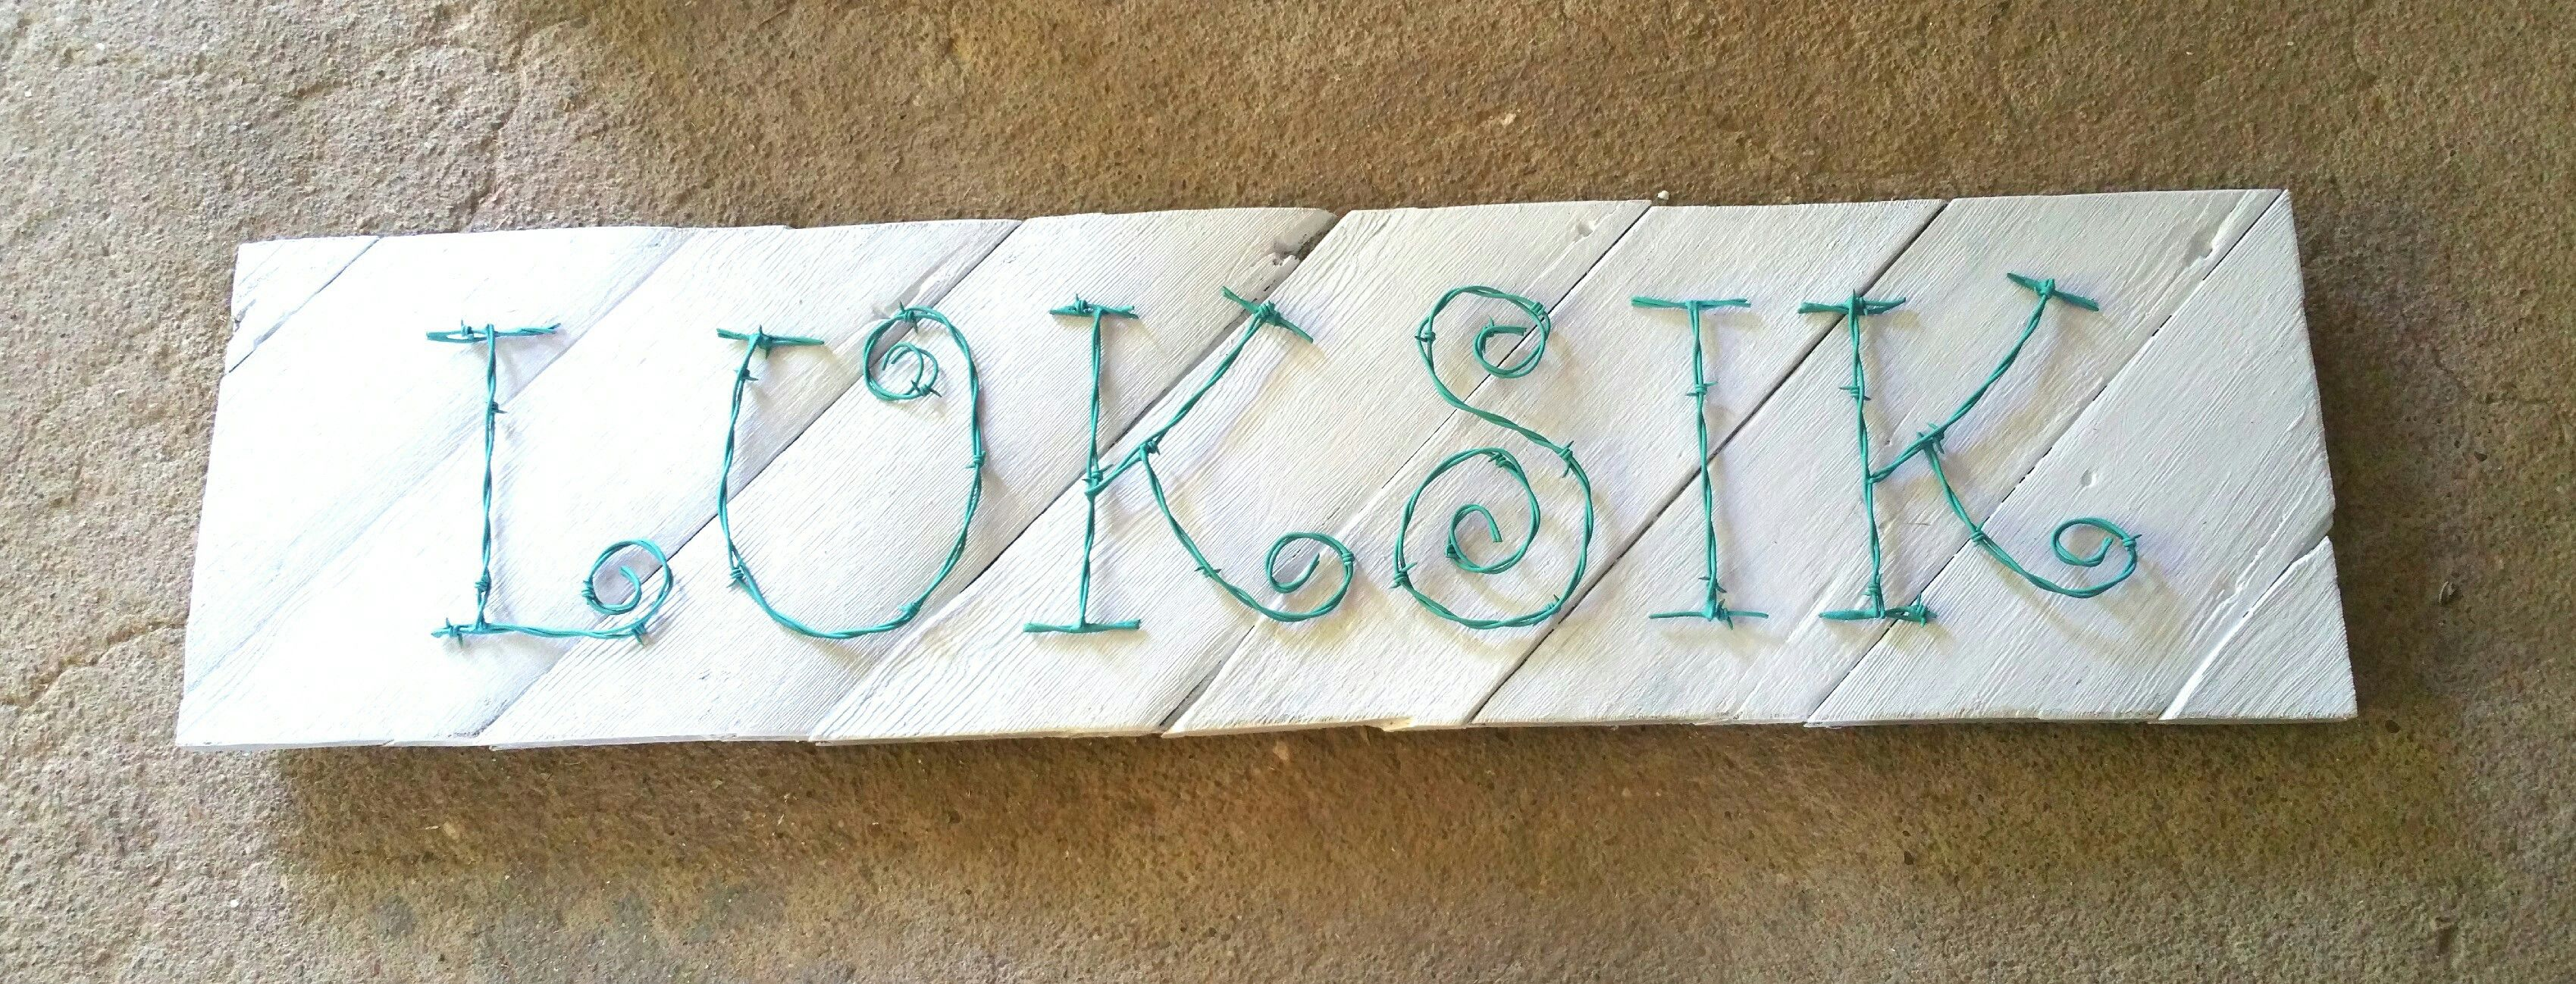 Custom Name Board in lettering style 1 made from upcycled recycled ...